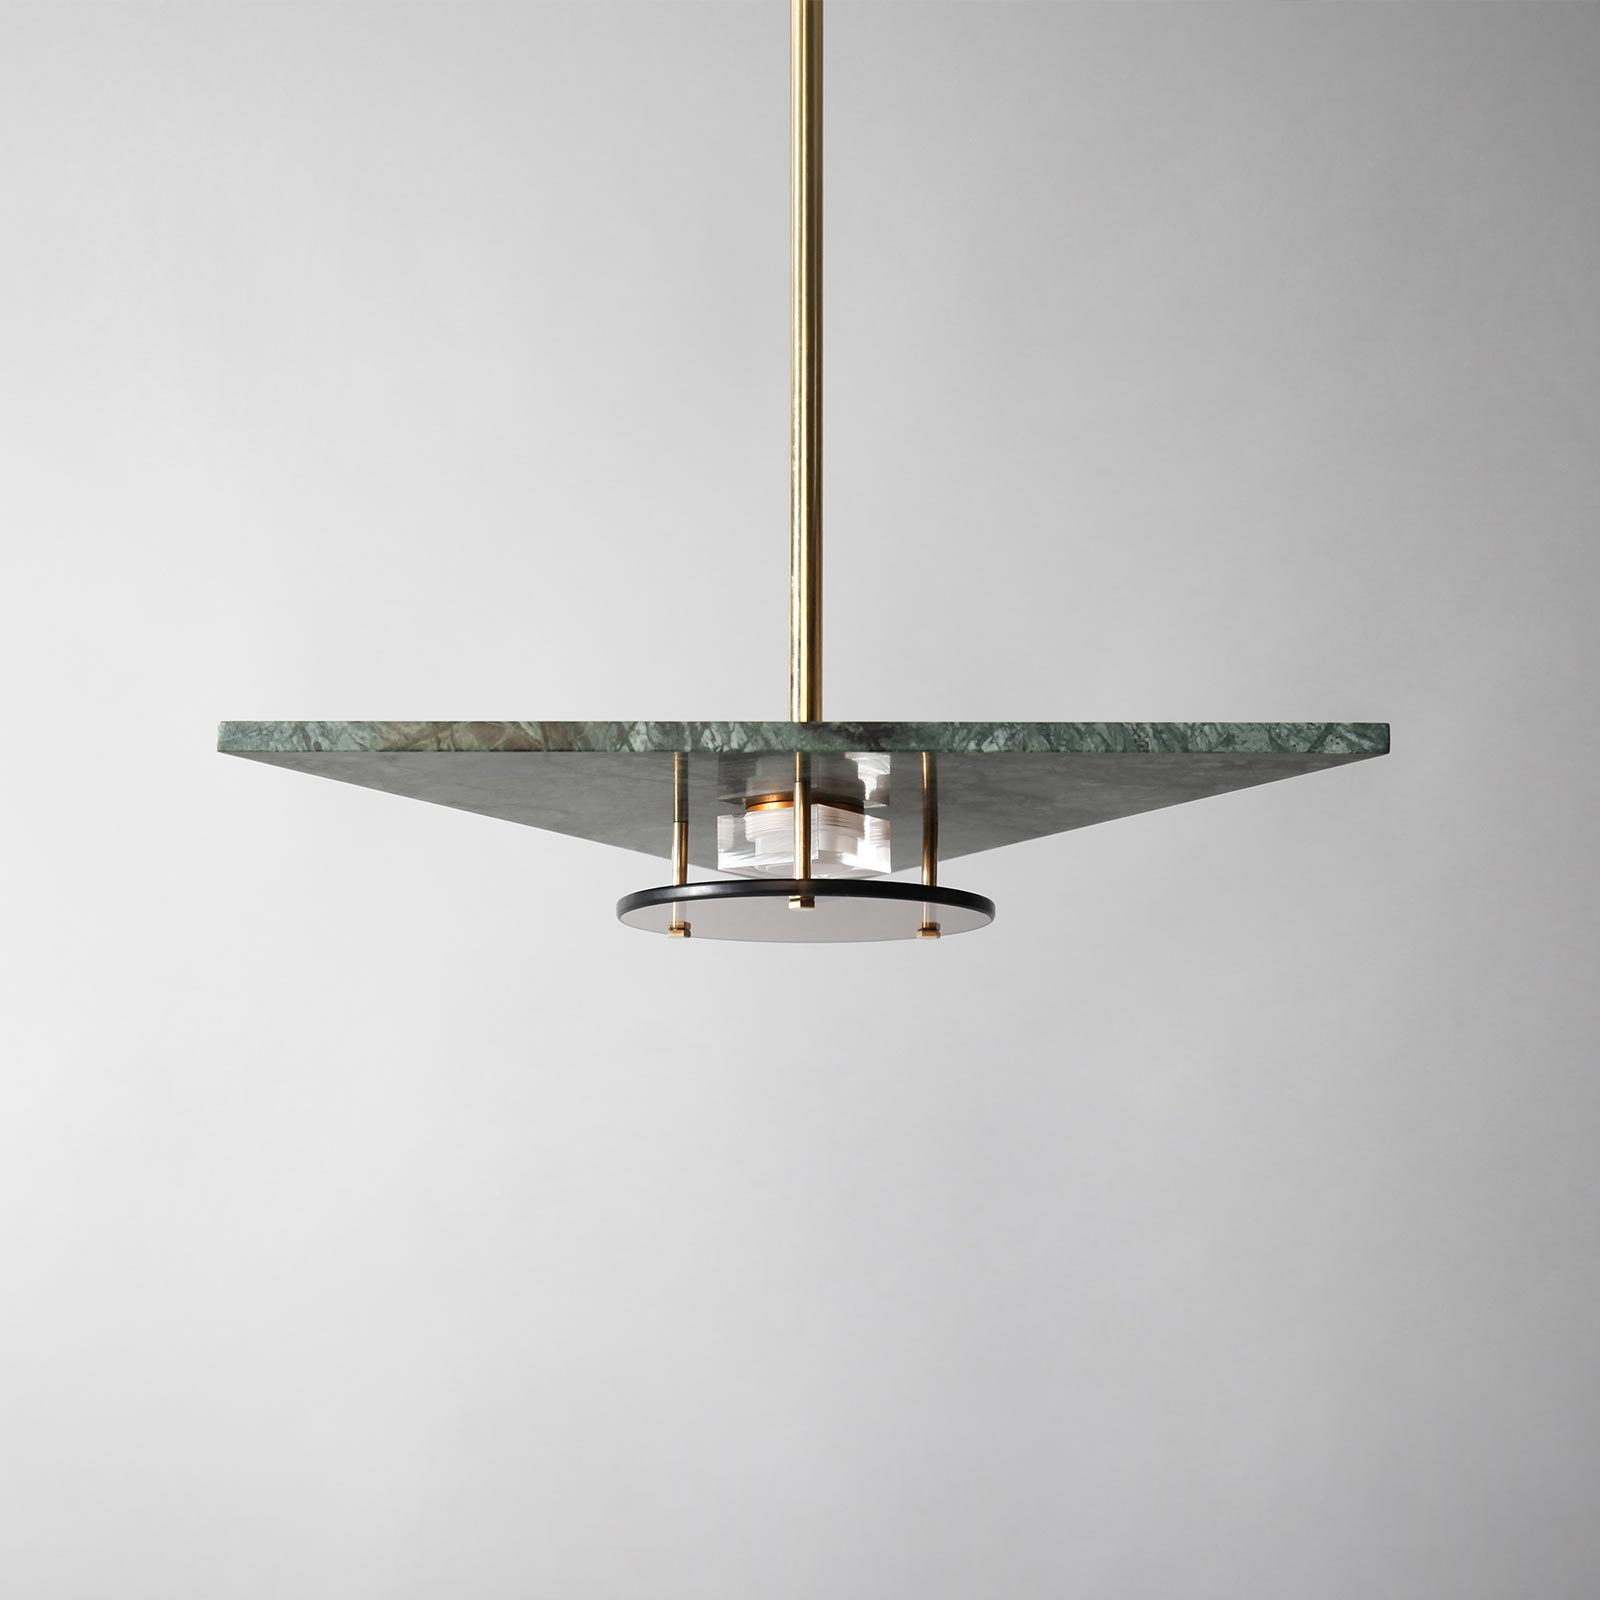 Living At Home März 2018 Bermuda Pendant Light In Moss Green Marble And Brass By Marz Designs 2018 Australia